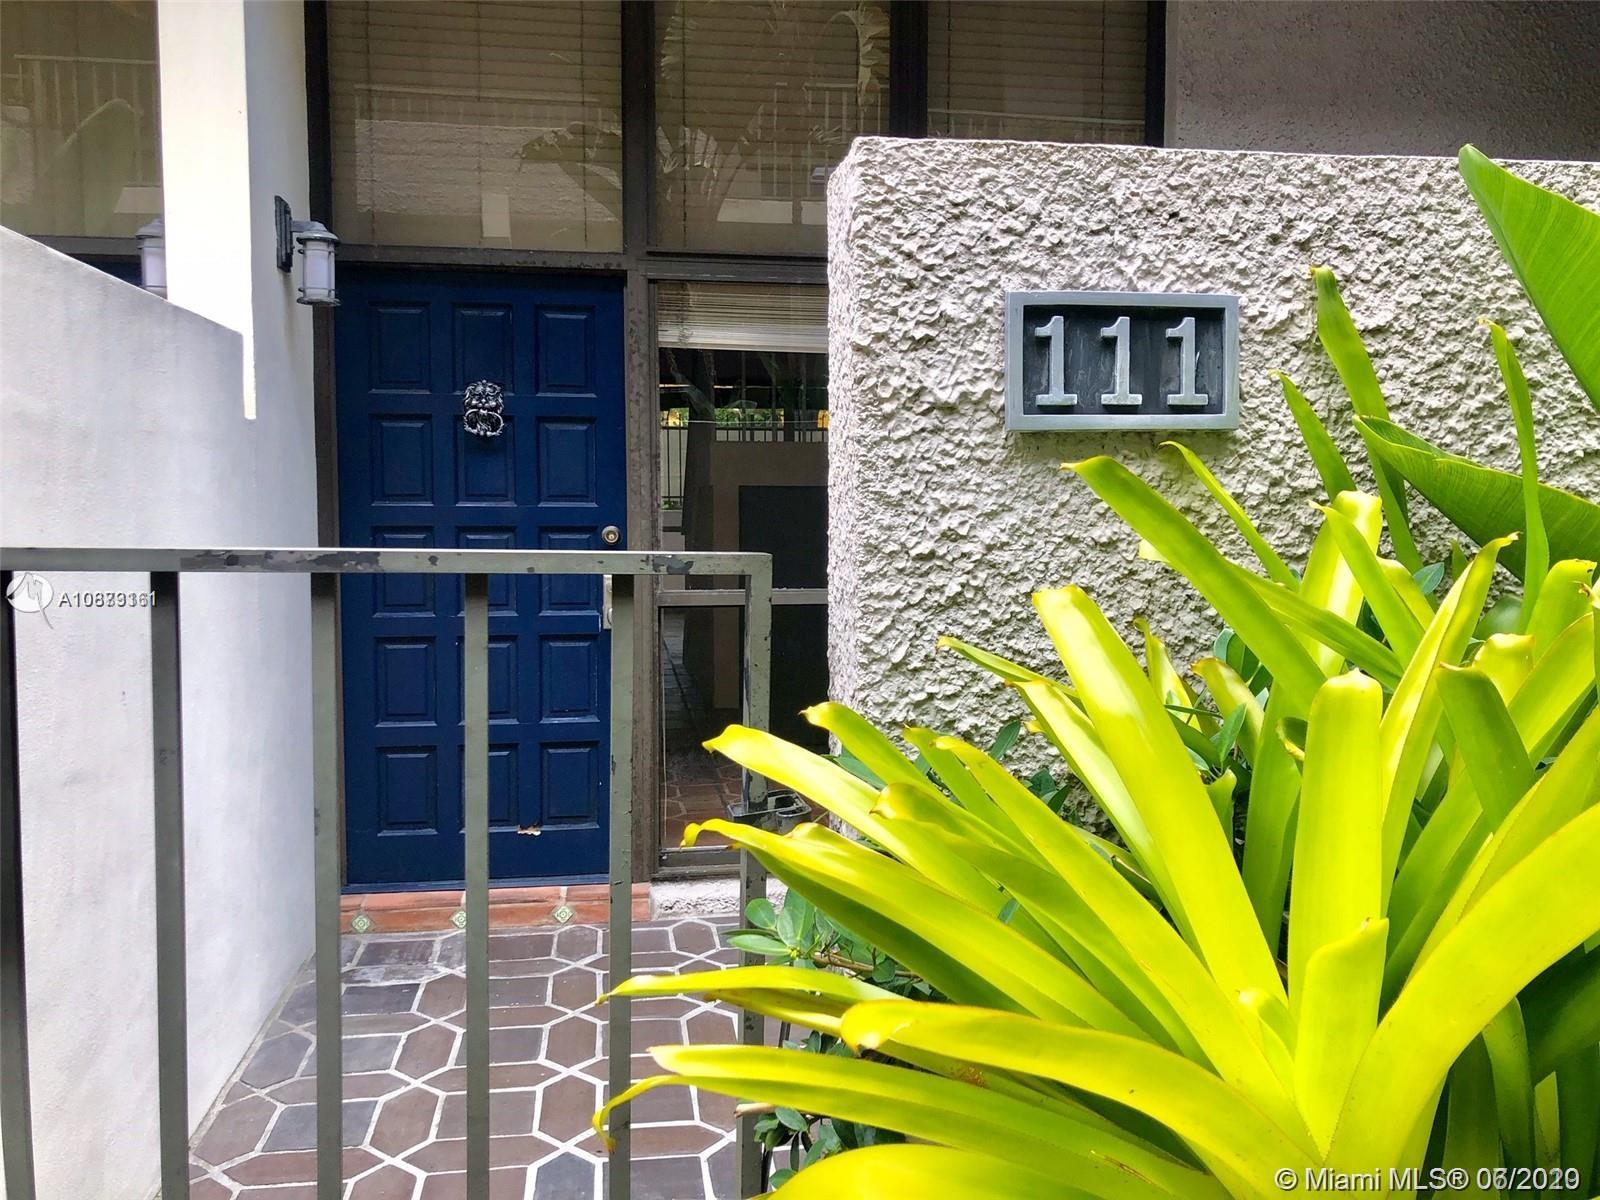 Rarely available! This BIG 1 bed 1.5 bathroom townhouse can be used as a commercial or residential use. Nest door to the highly awaited MR. C's condo currently being built and walking distance to all the grove has to offer.  Very centrally located with two secured parking spots and lots of natural light. This unit has a lot to offer.  Please do not hesitate to call agent with any question or to set up an appointment.